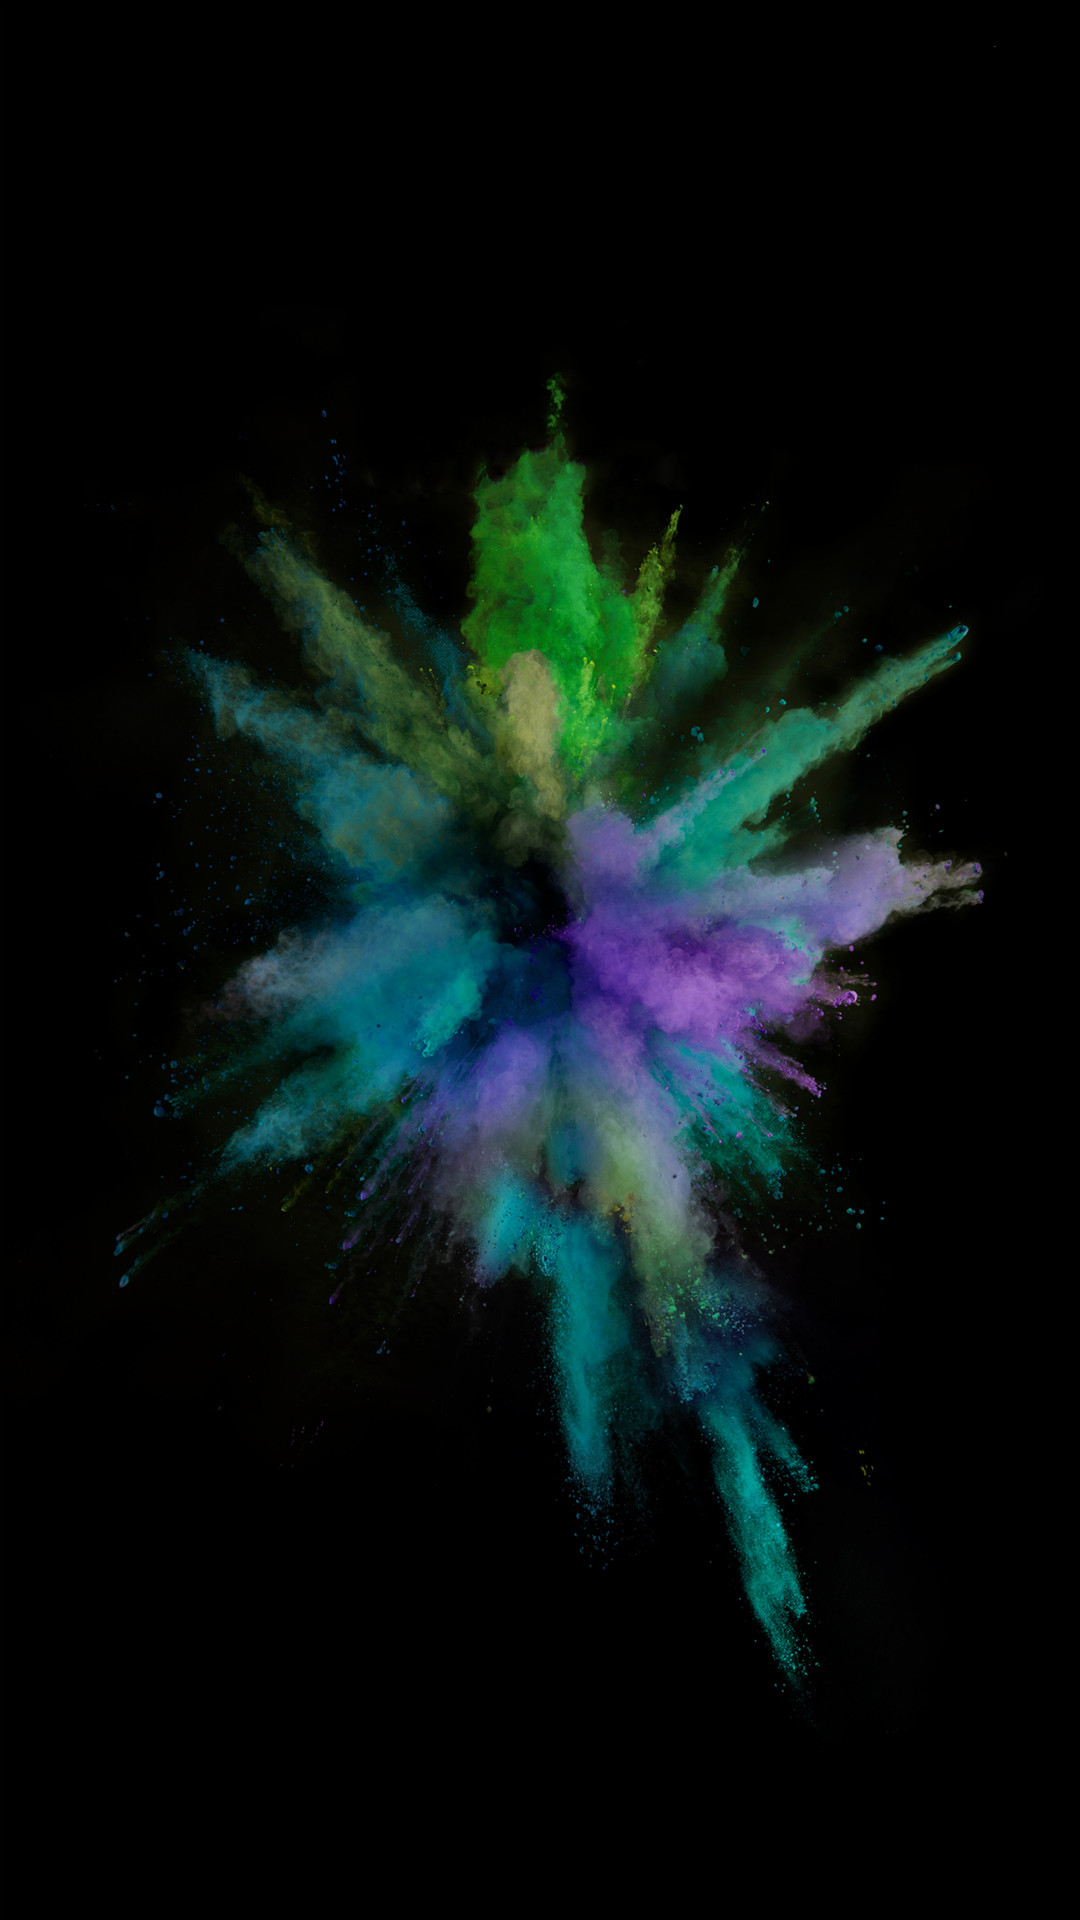 1080x1920 iOS9 Colorful Smoke Explosion Dark Art iPhone 8 wallpaper